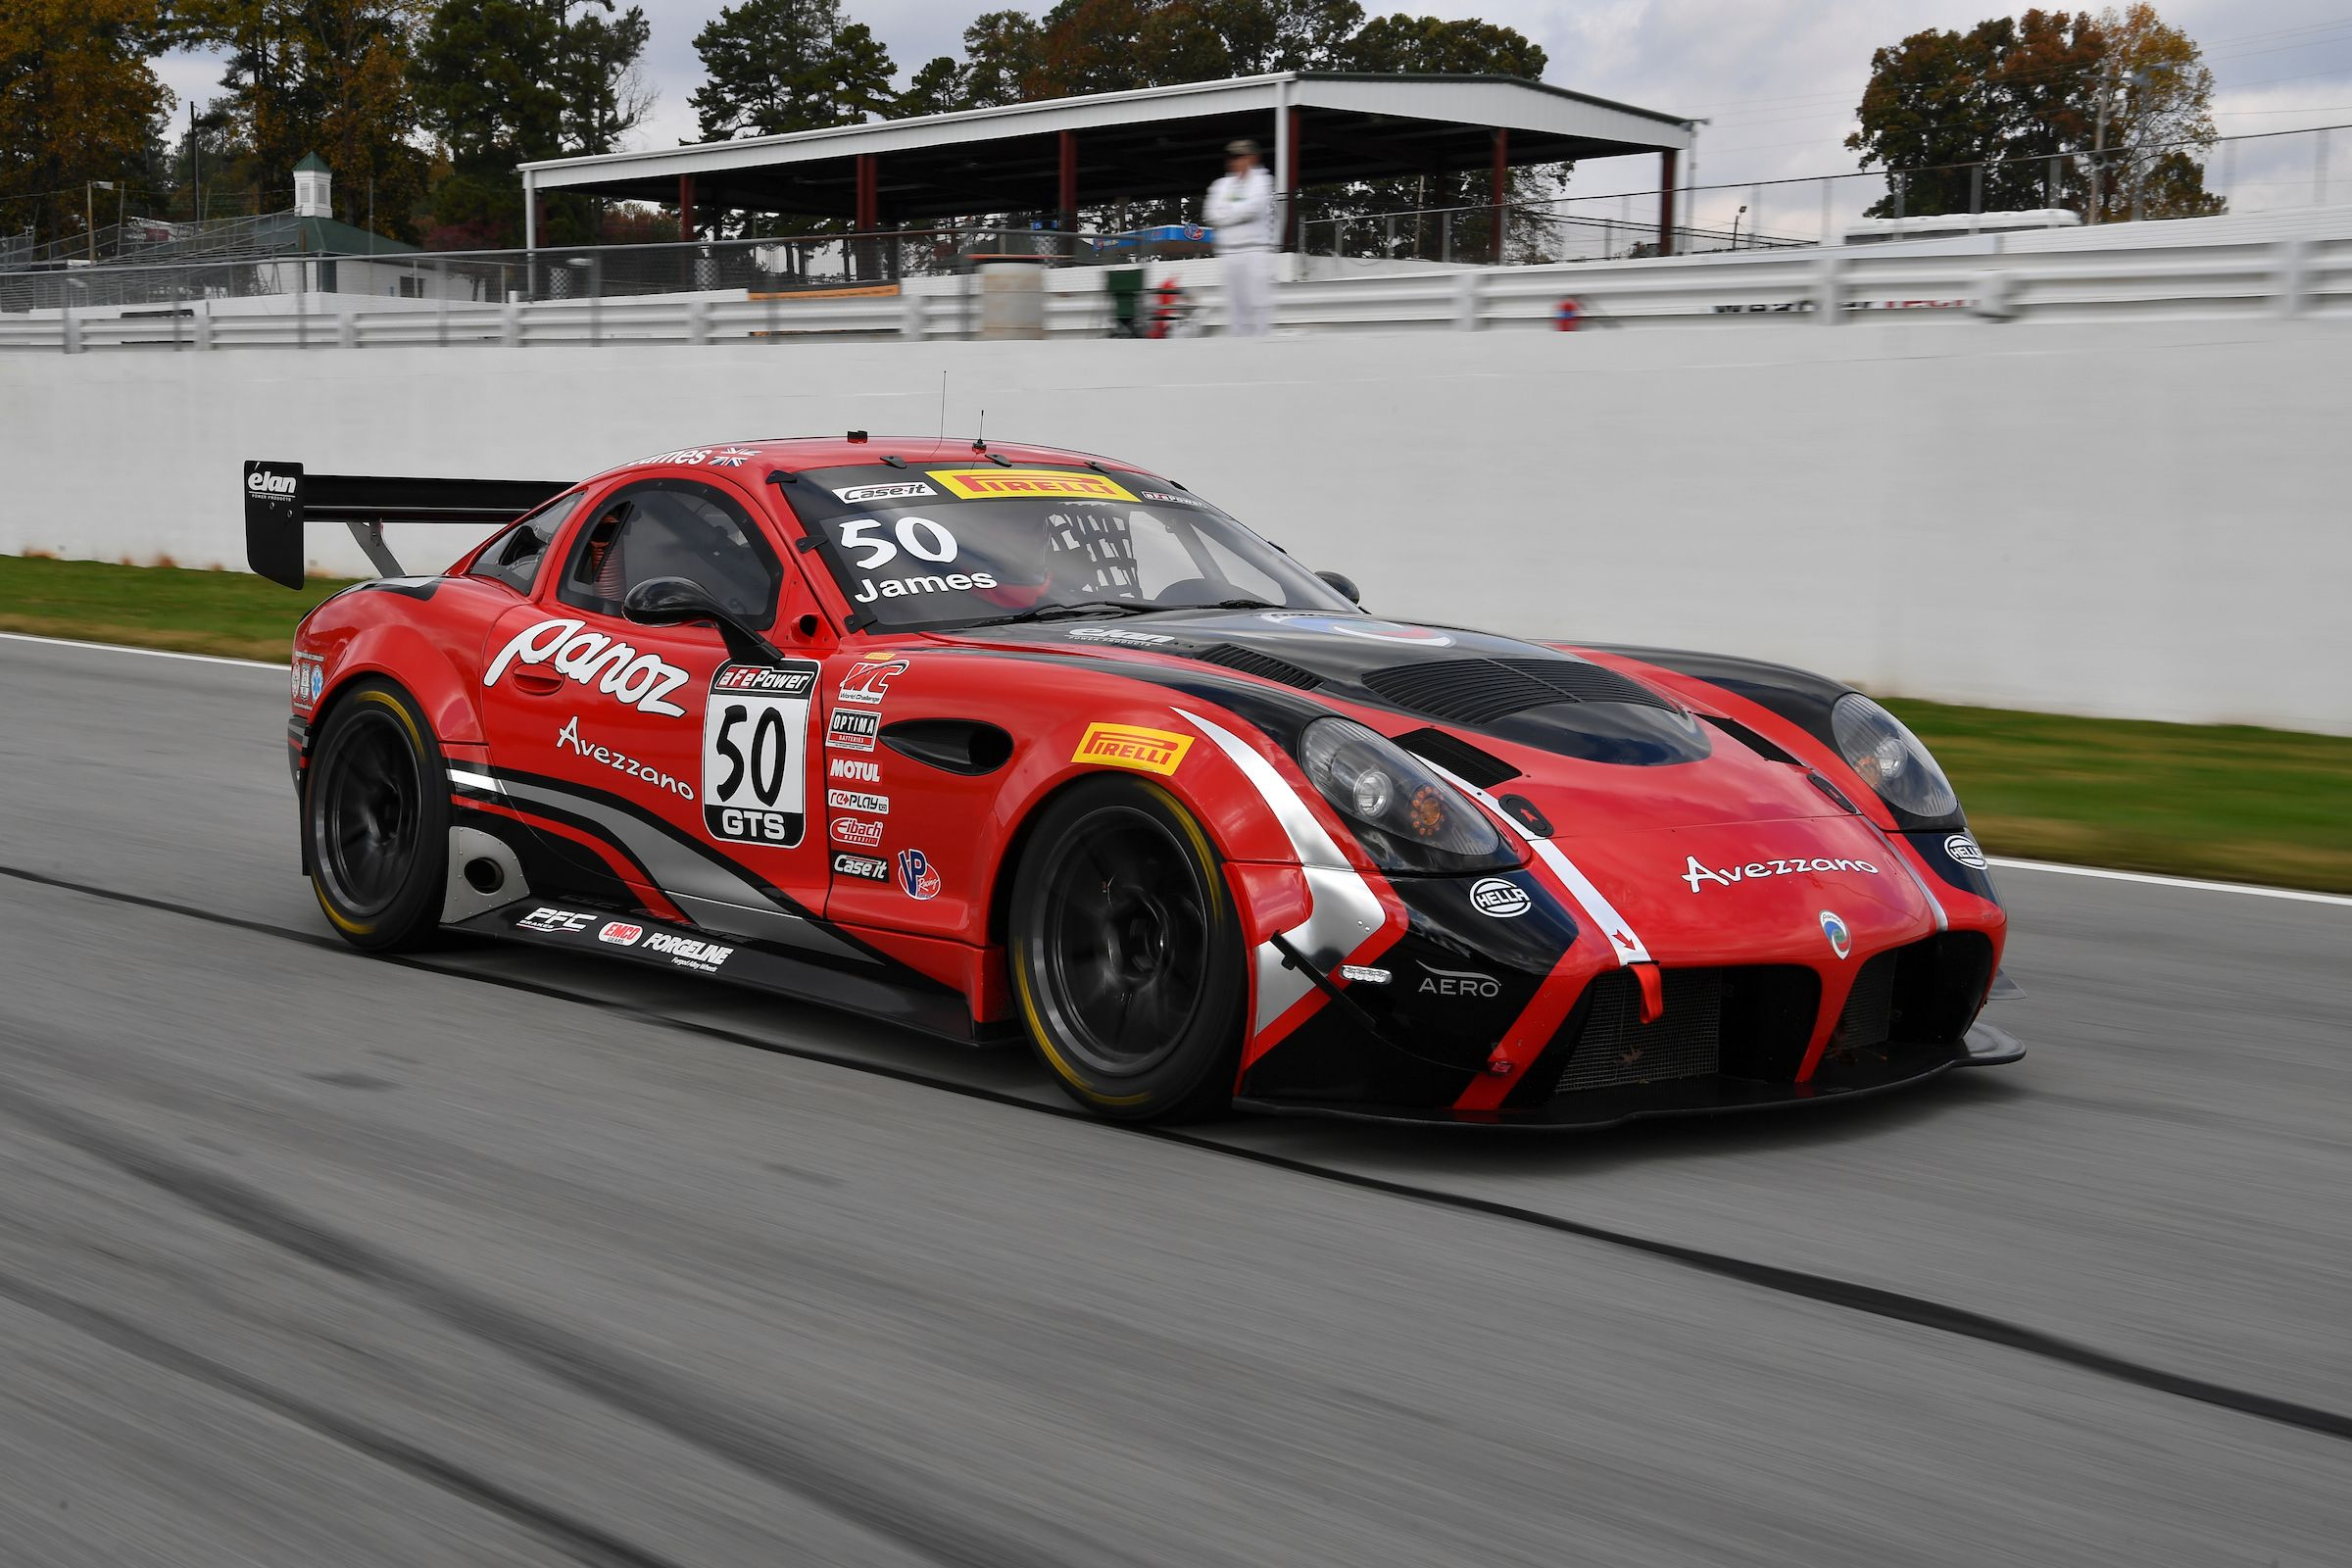 Panoz Announces Second Season of GT Class Racing with Two Car Panoz